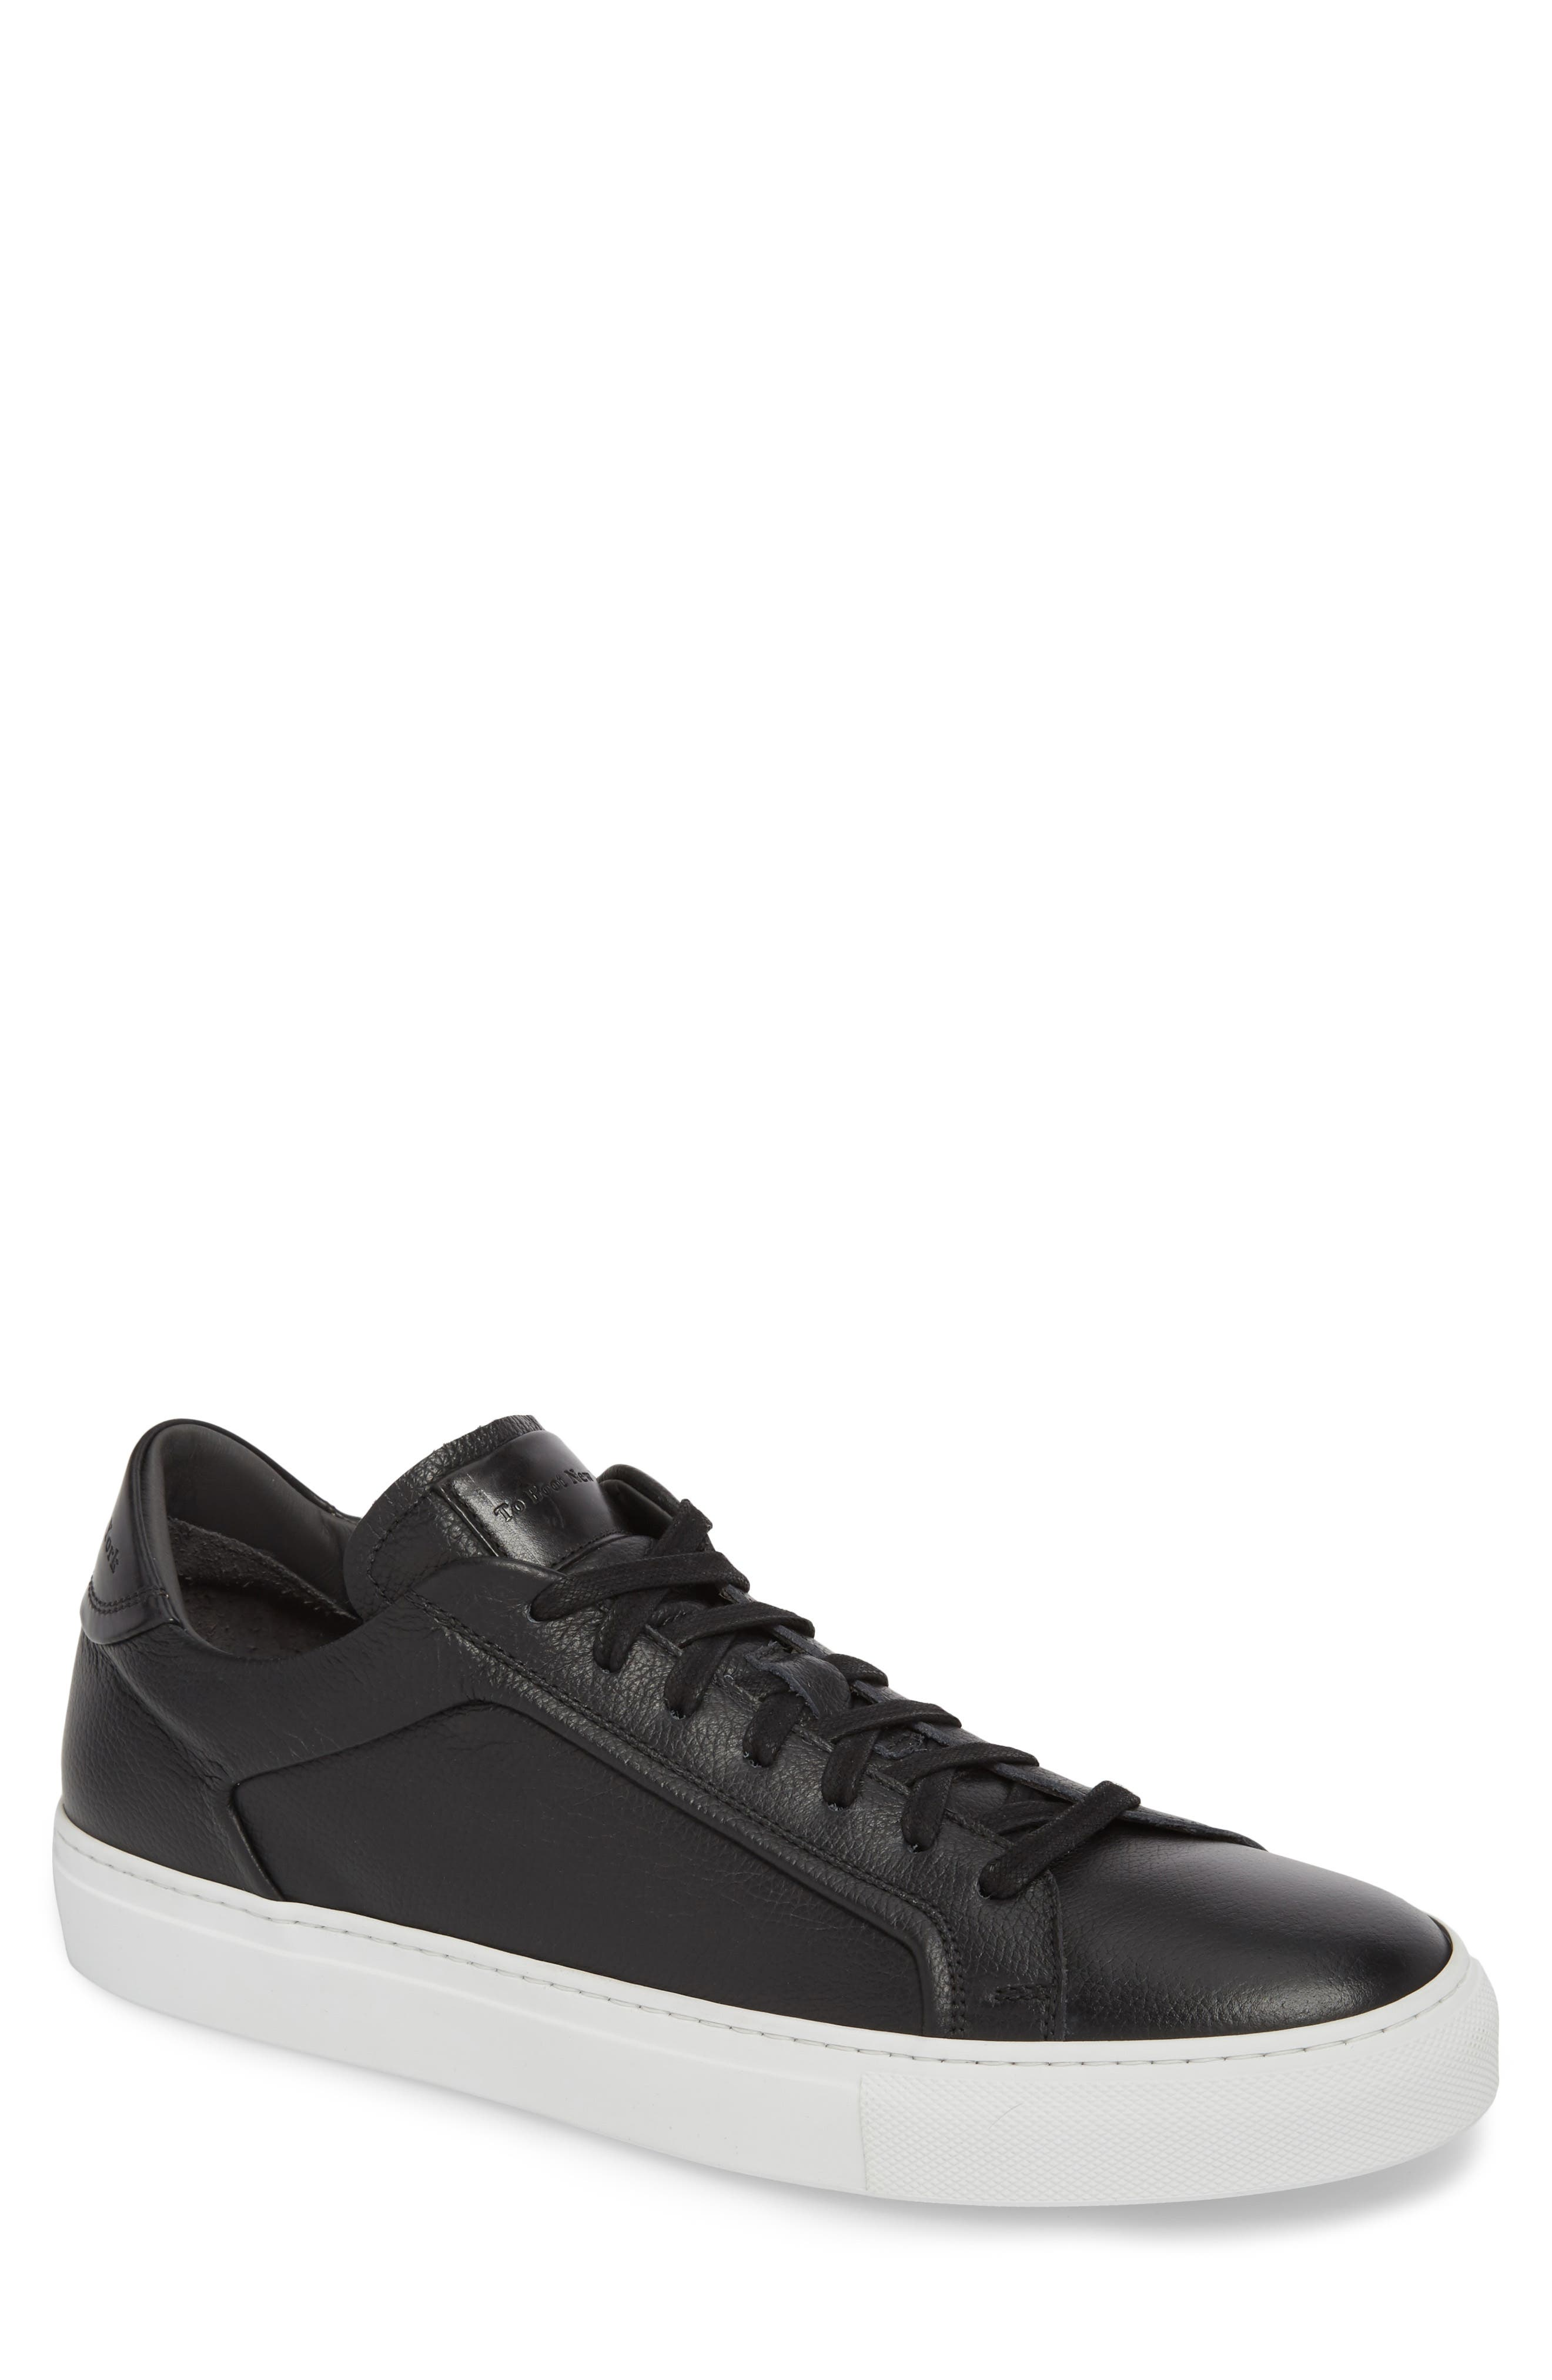 TO BOOT NEW YORK CARLIN SNEAKER